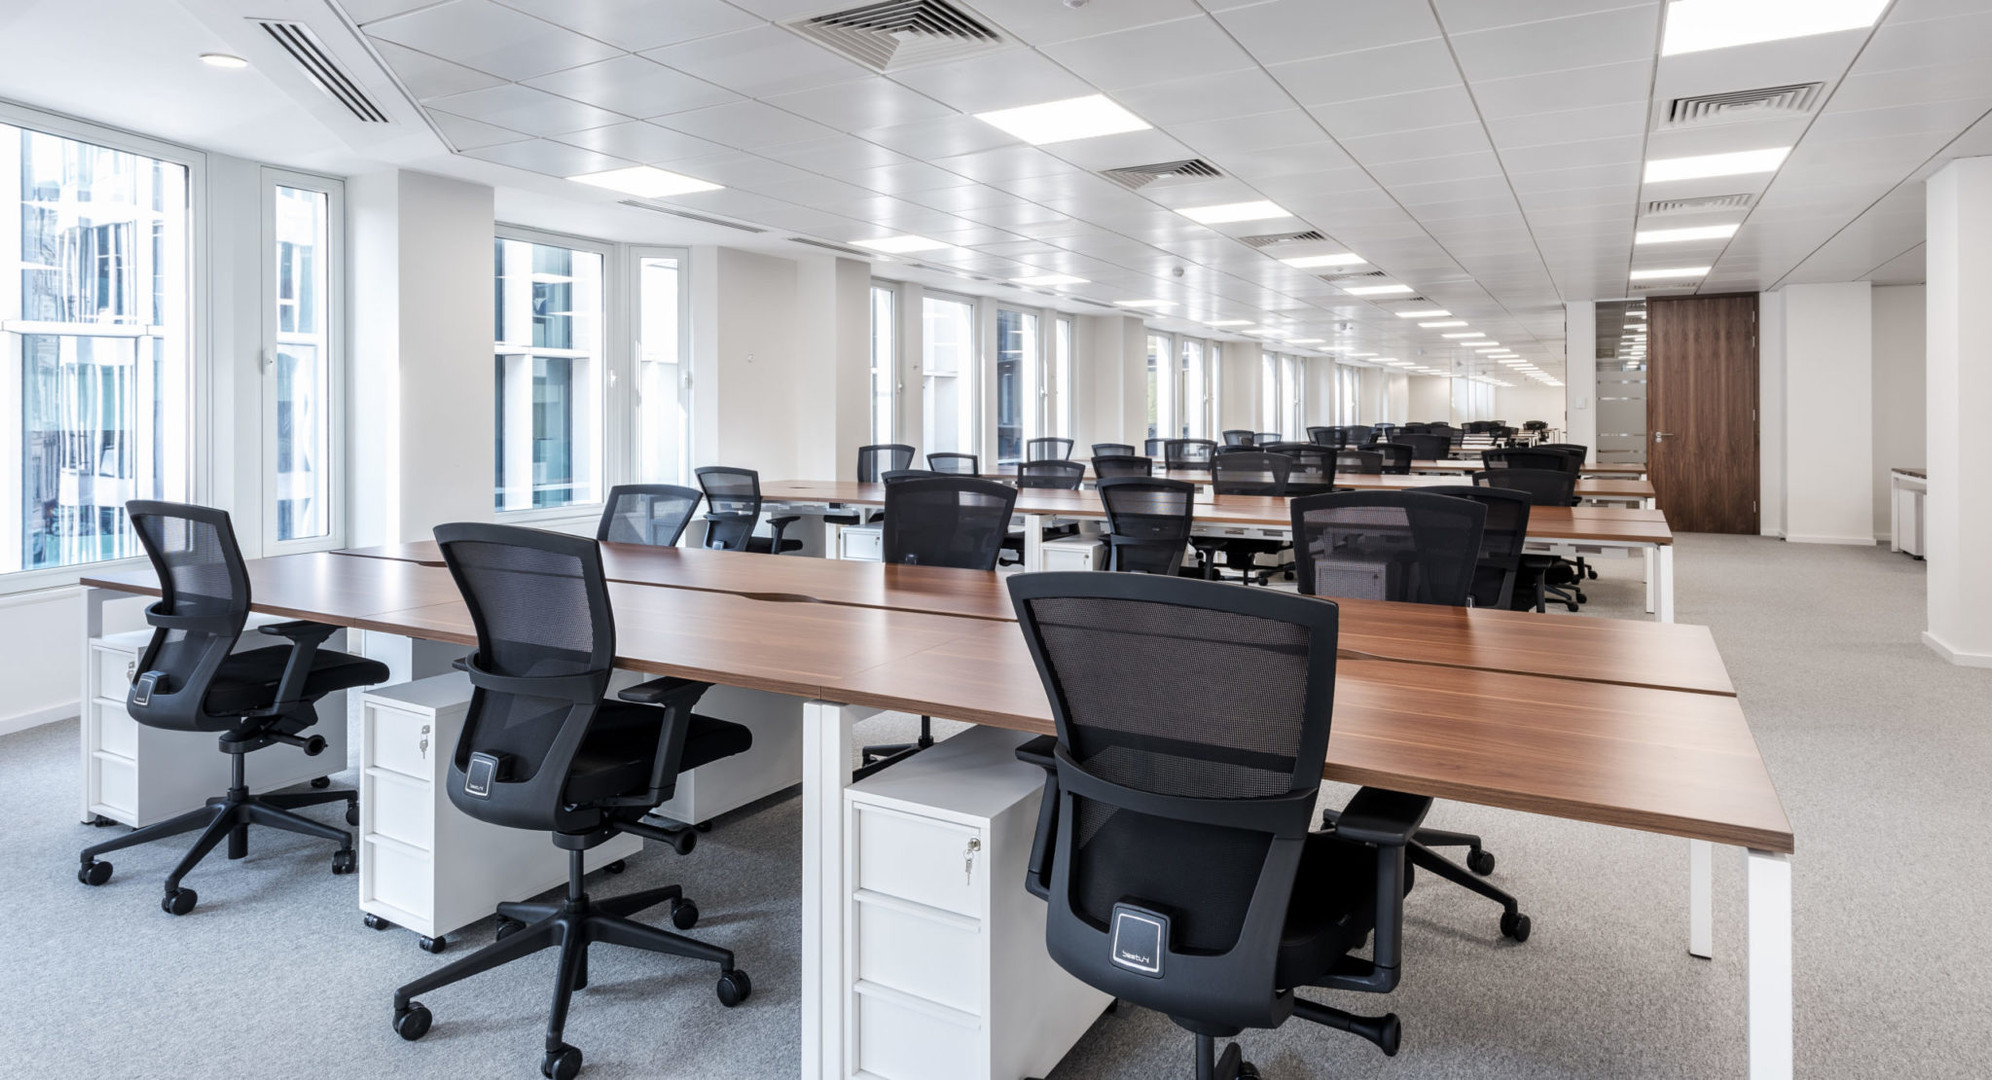 led -Bailey-Offices-scaled.jpg